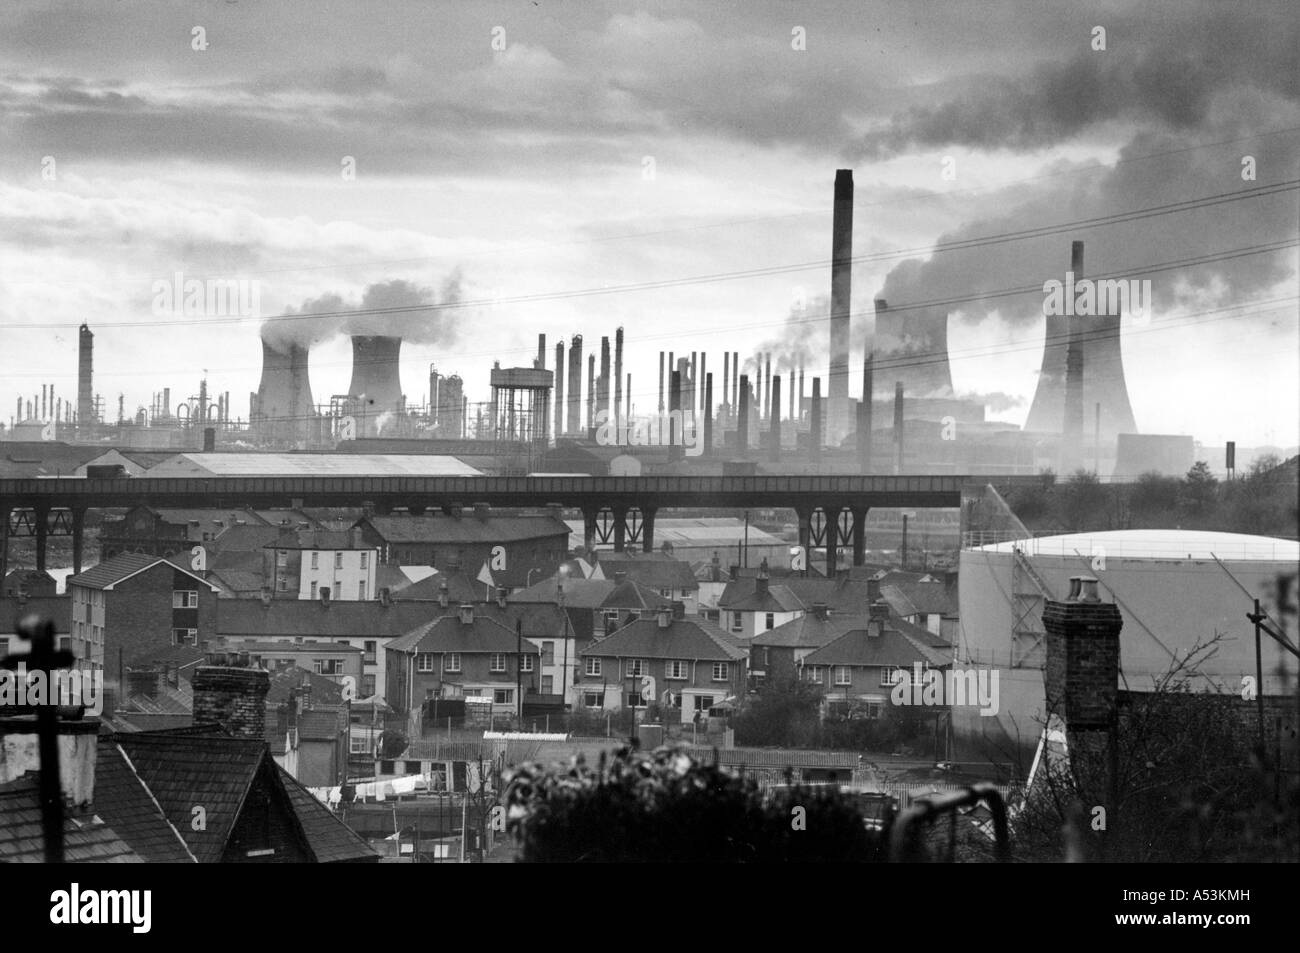 Painet ha1556 131 black and white environment industrial landscape port talbot united kingdom country developing - Stock Image